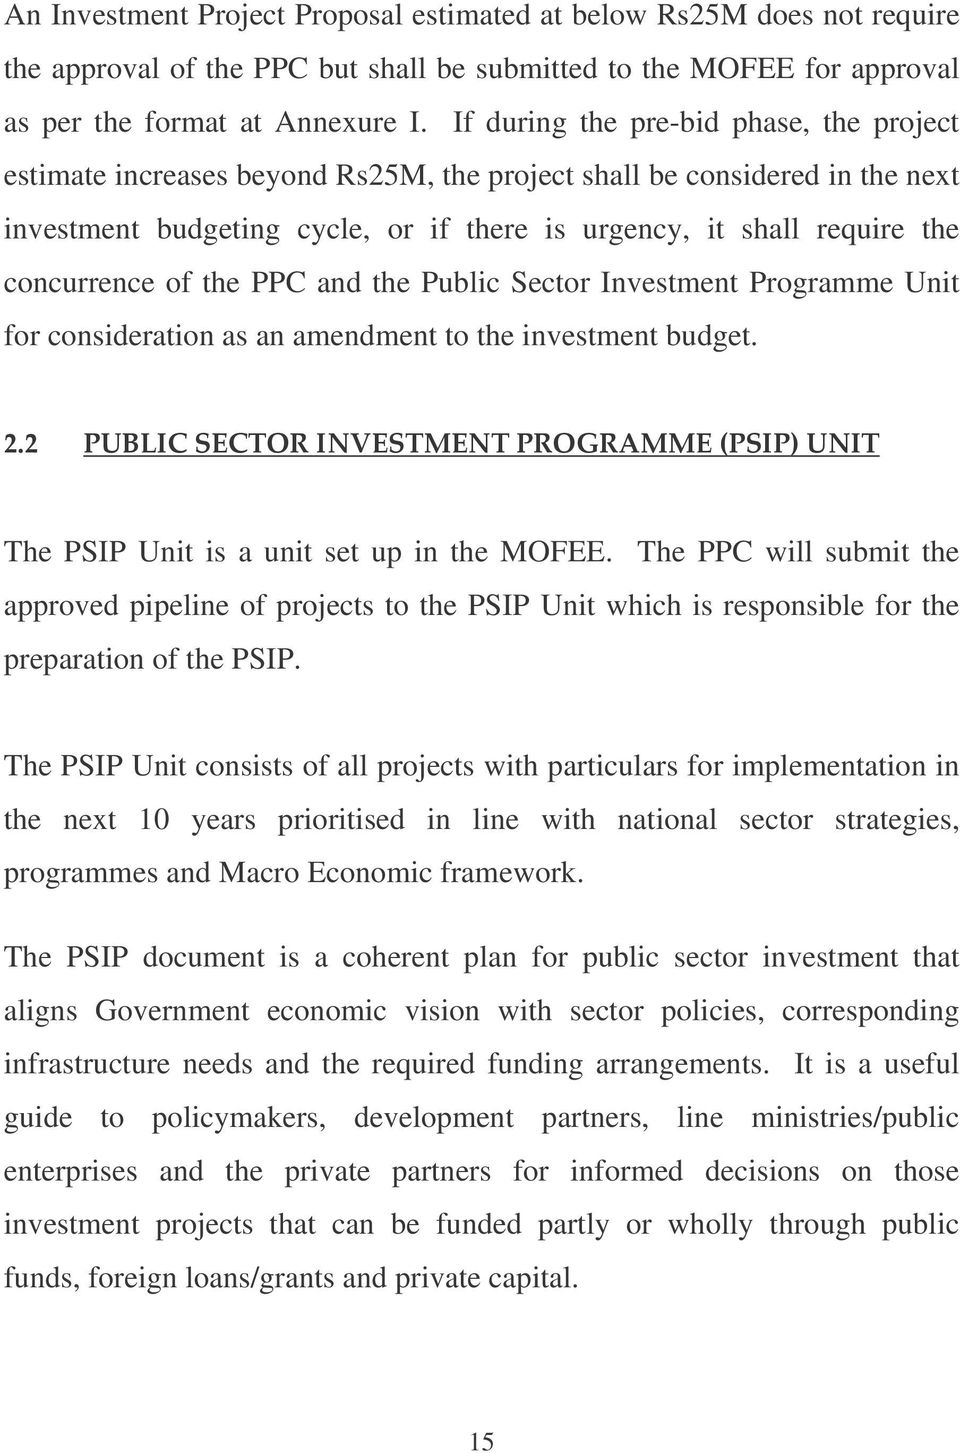 concurrence of the PPC and the Public Sector Investment Programme Unit for consideration as an amendment to the investment budget. The PSIP Unit is a unit set up in the MOFEE.